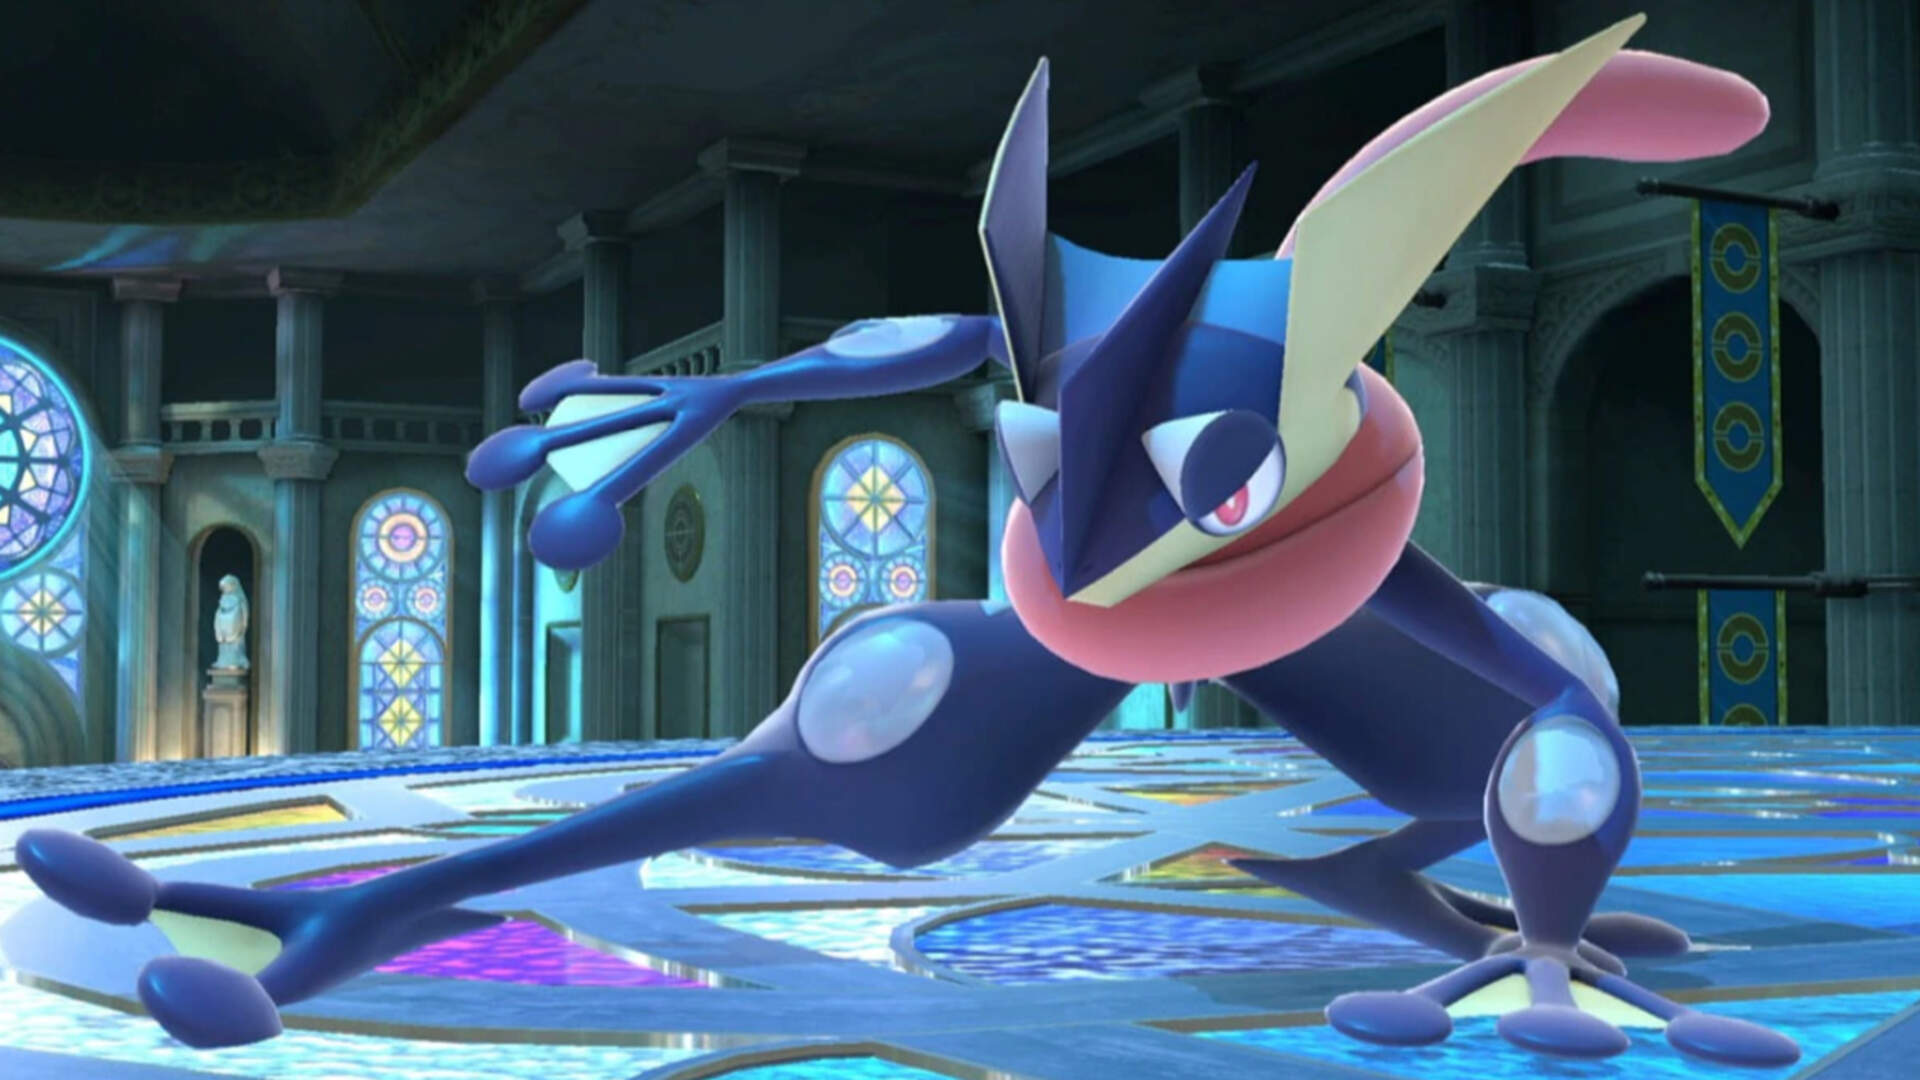 The Supple-Tongued Greninja is the Most Popular Pokemon in the World